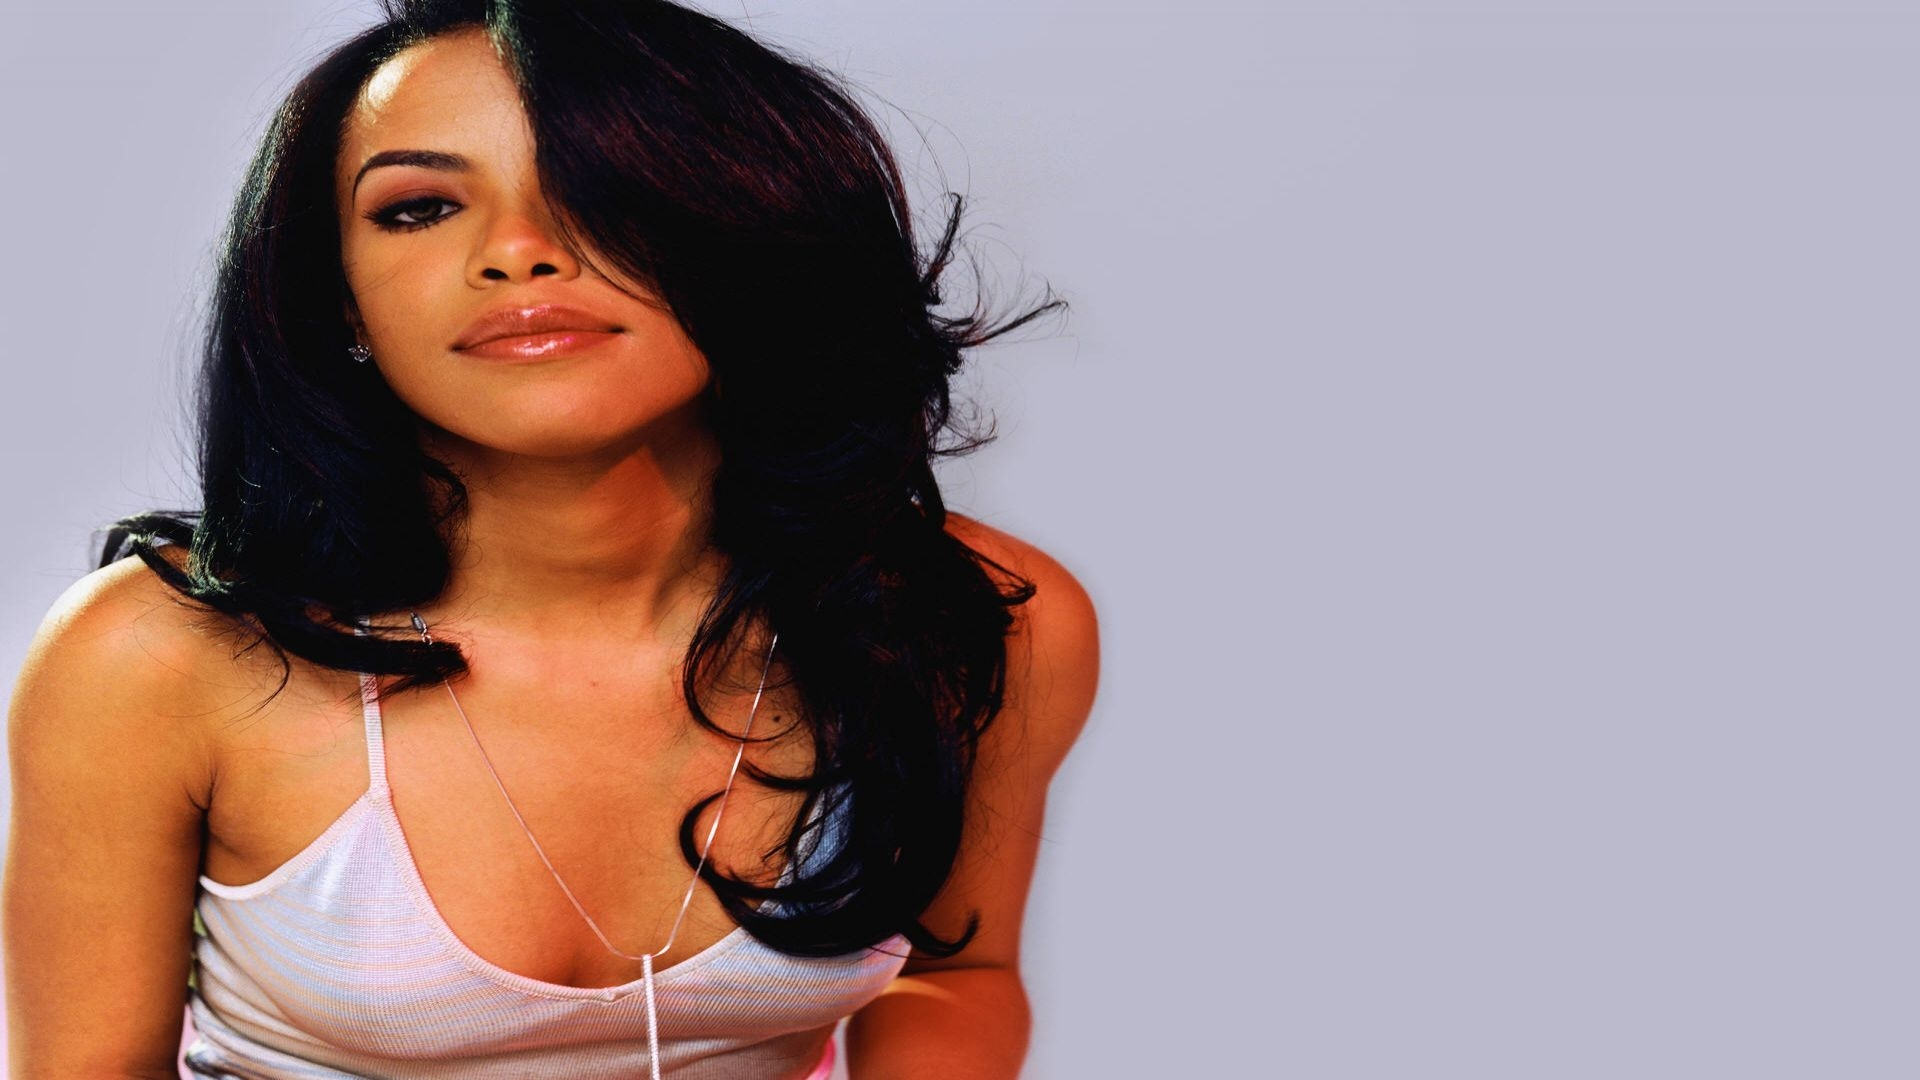 Aaliyah Celebrity HD  42 Top Picture Resolution HD Wallpaper